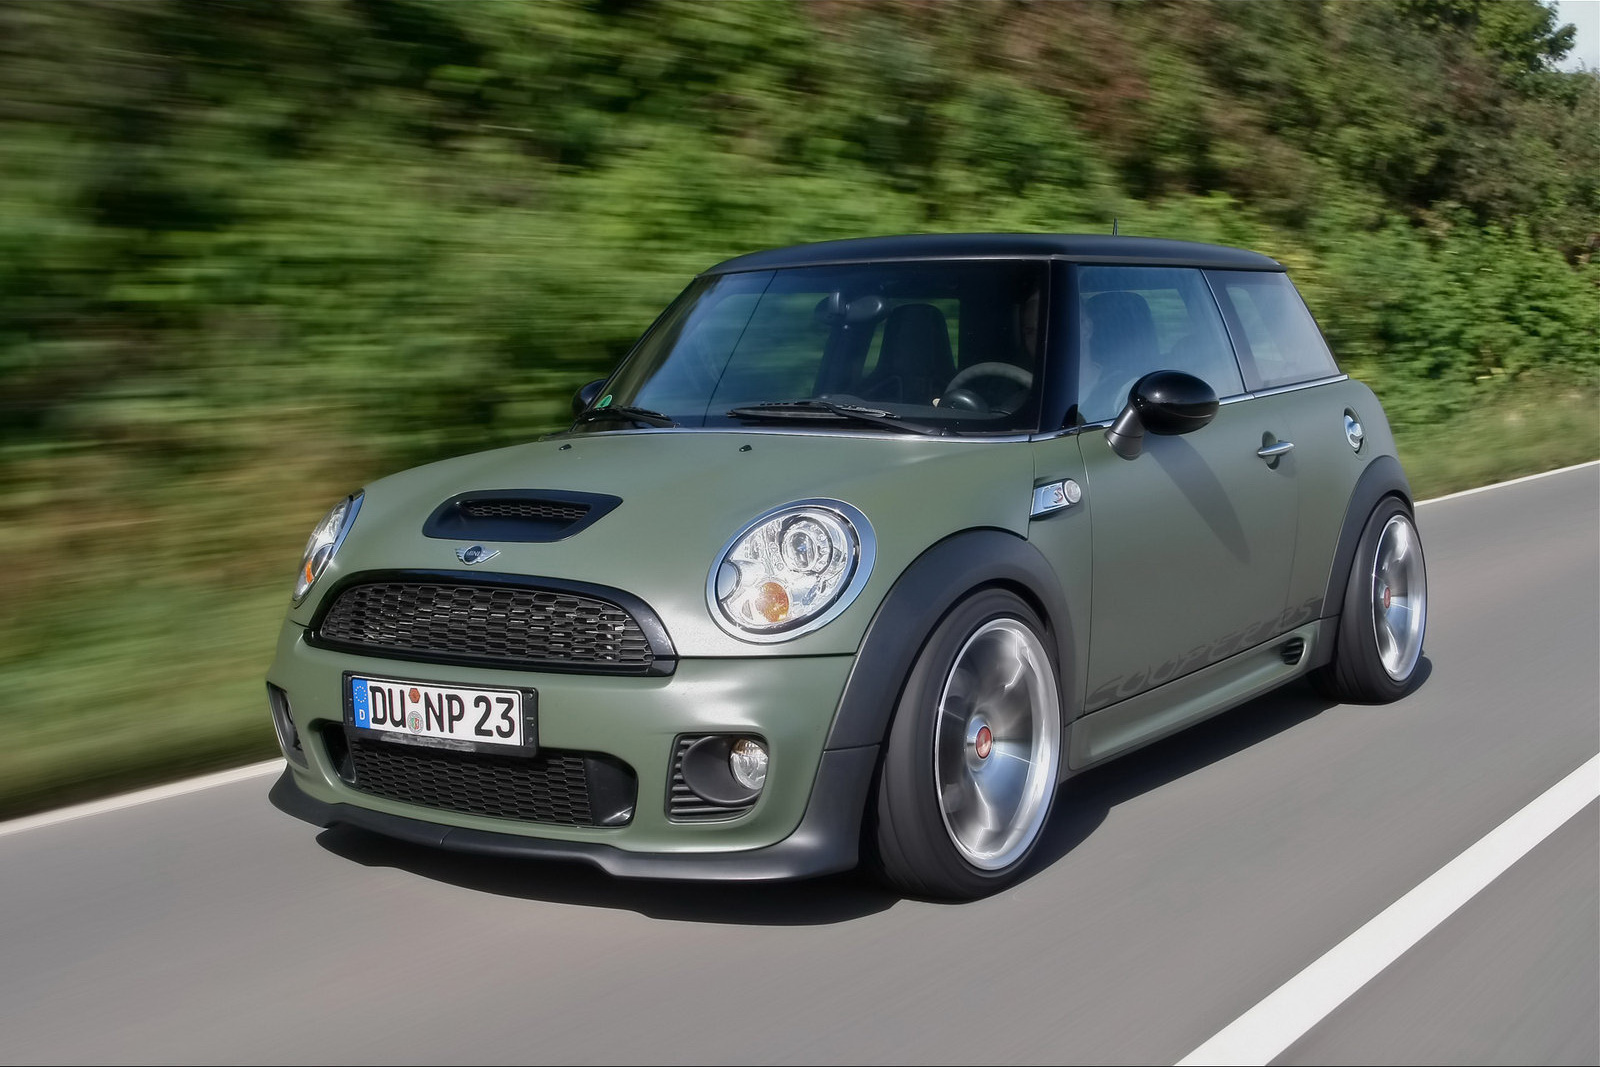 Trana Picture se 1838 likewise A24925 as well Nowack Motors Releases Mini Cooper S together with Watch together with Resiliencia 8414662. on 24925